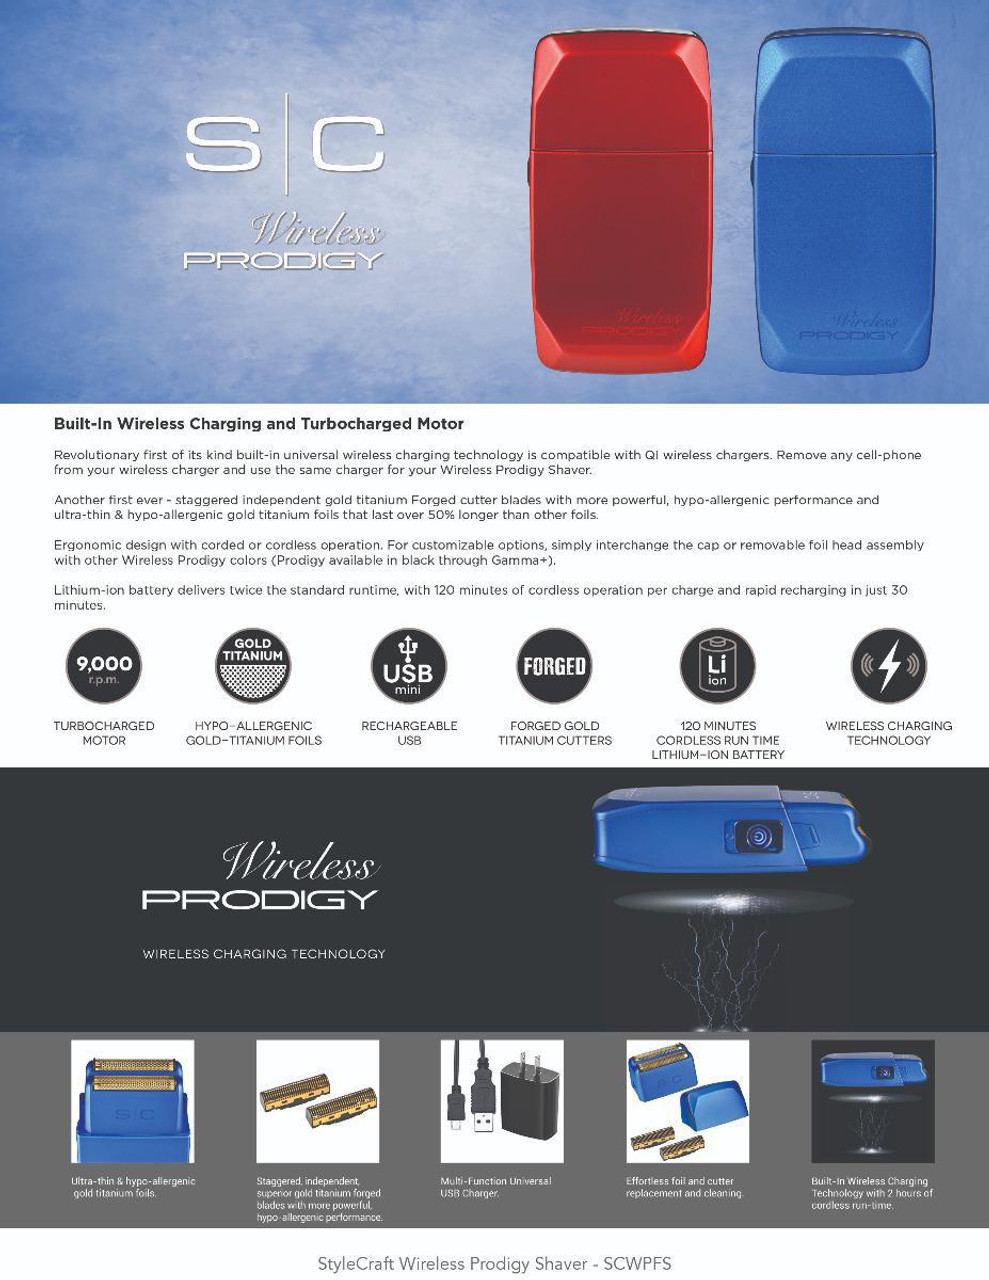 Stylecraft Prodigy Wireless Foil Shaver - Shiny Metallic Red